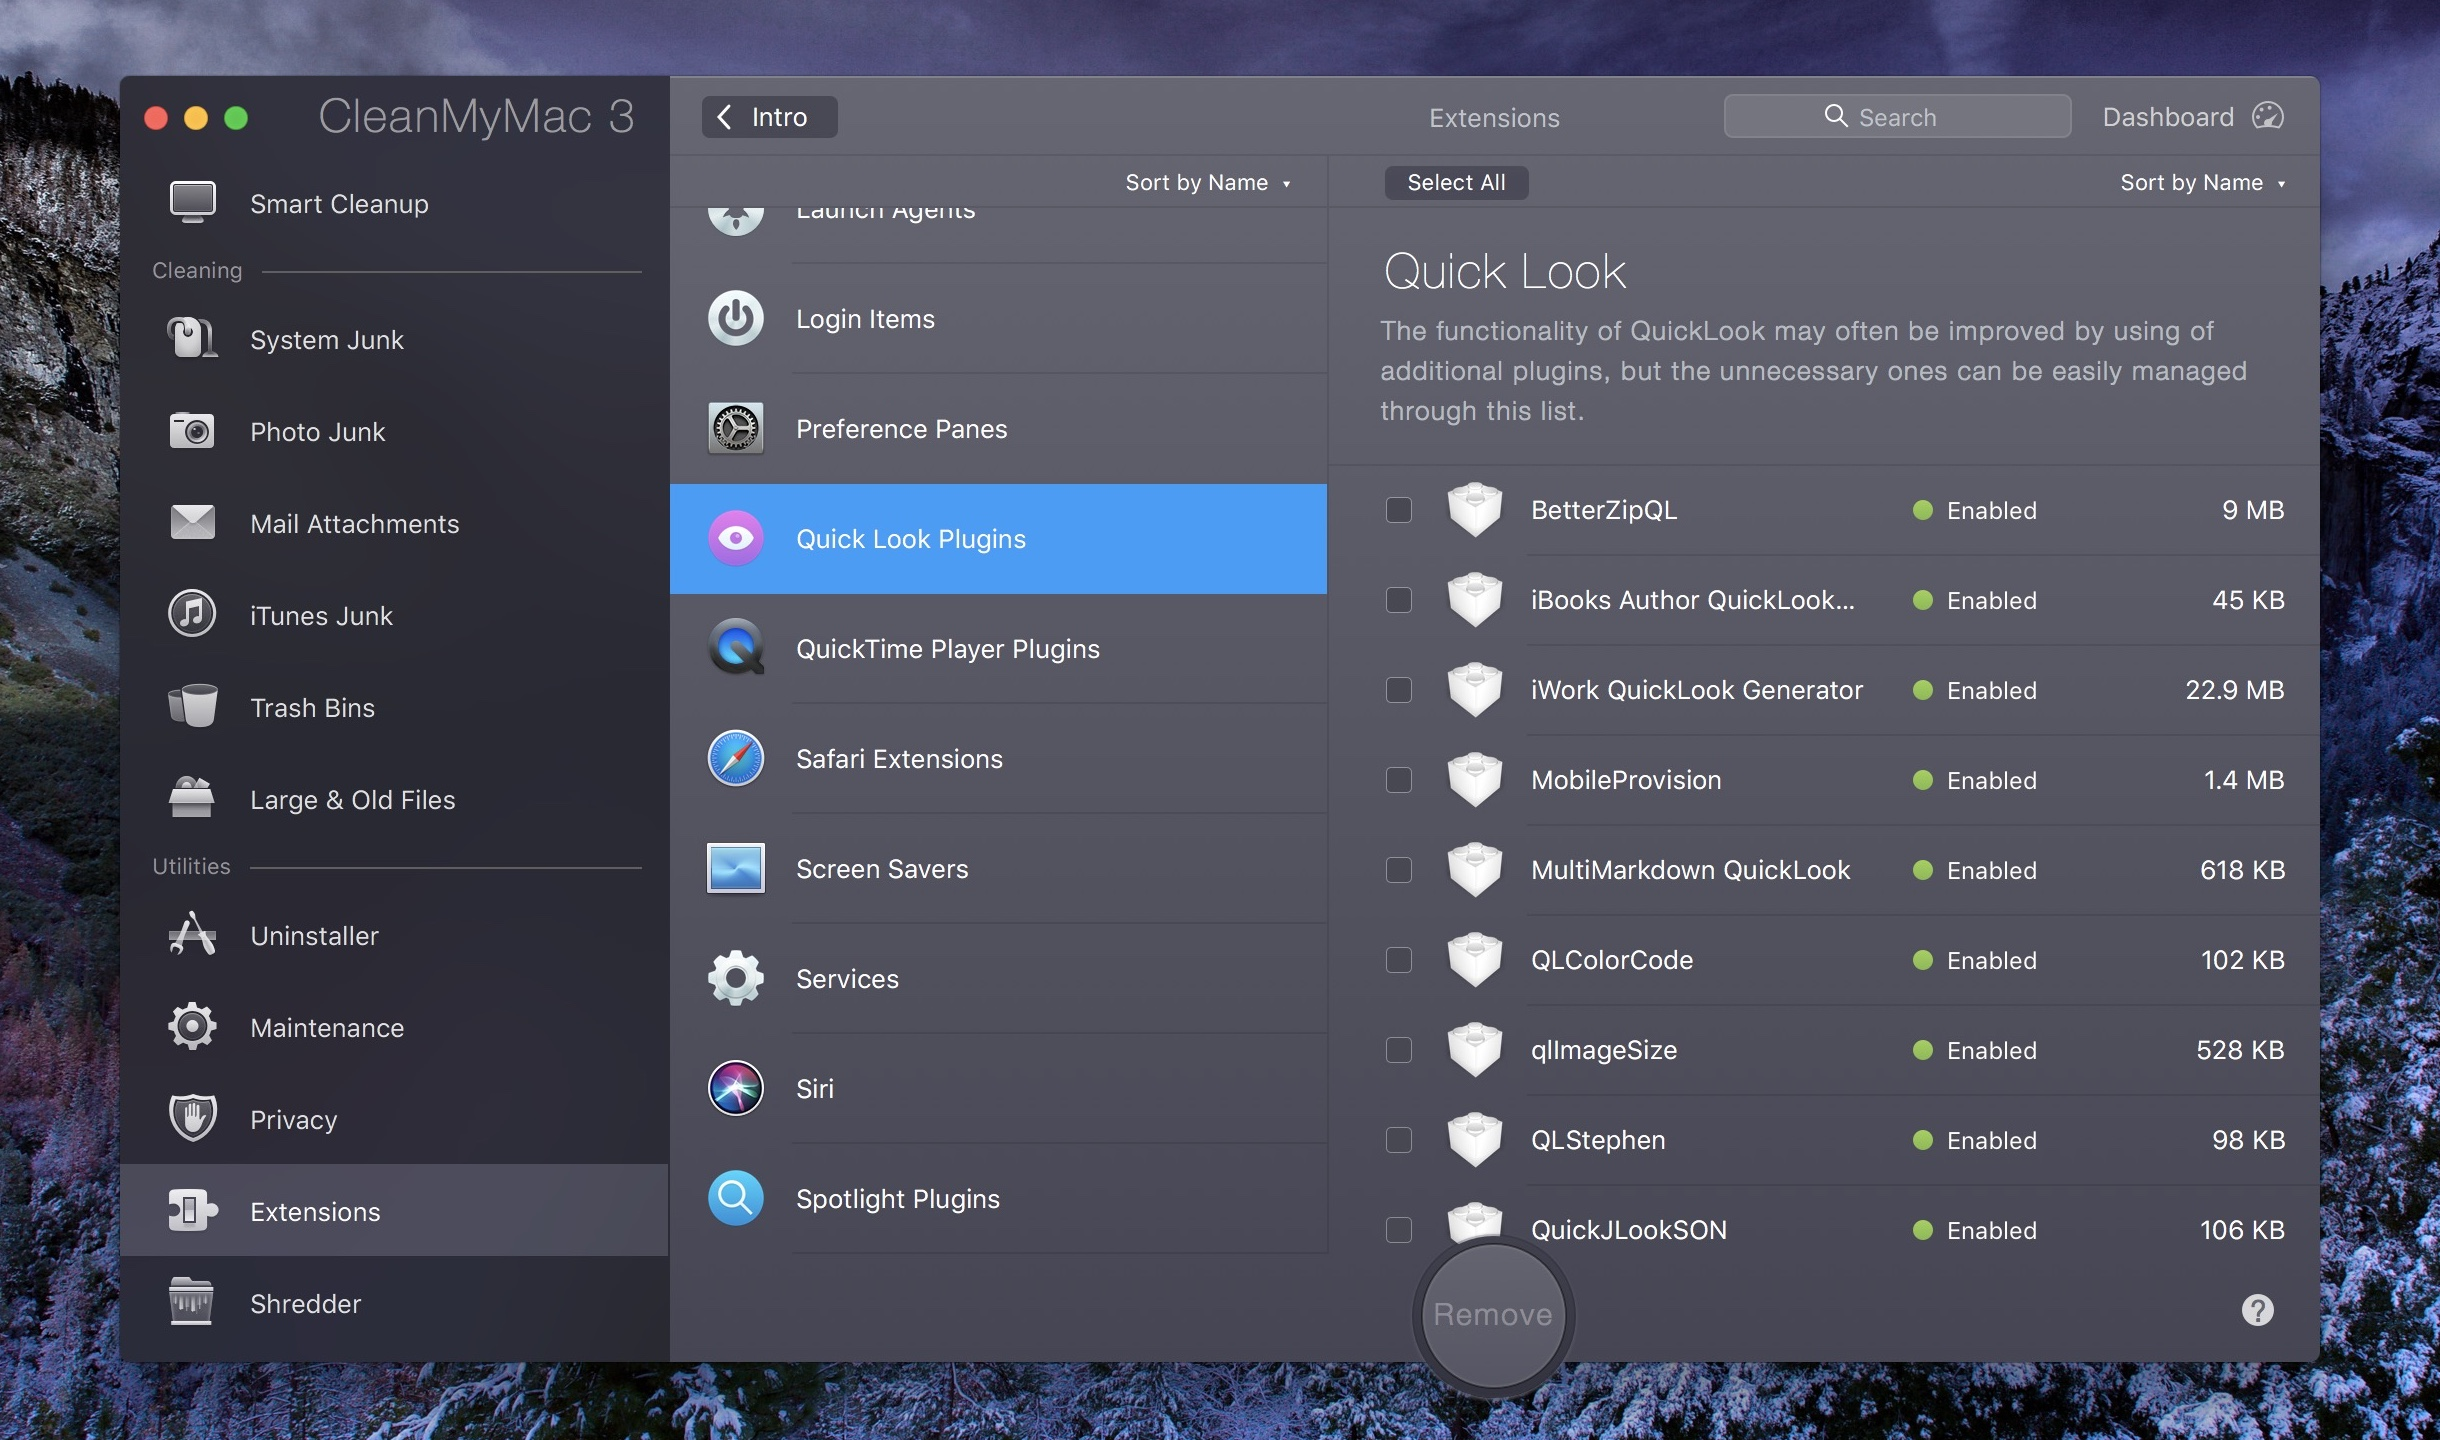 CleanMyMac - QuickLook Extensions